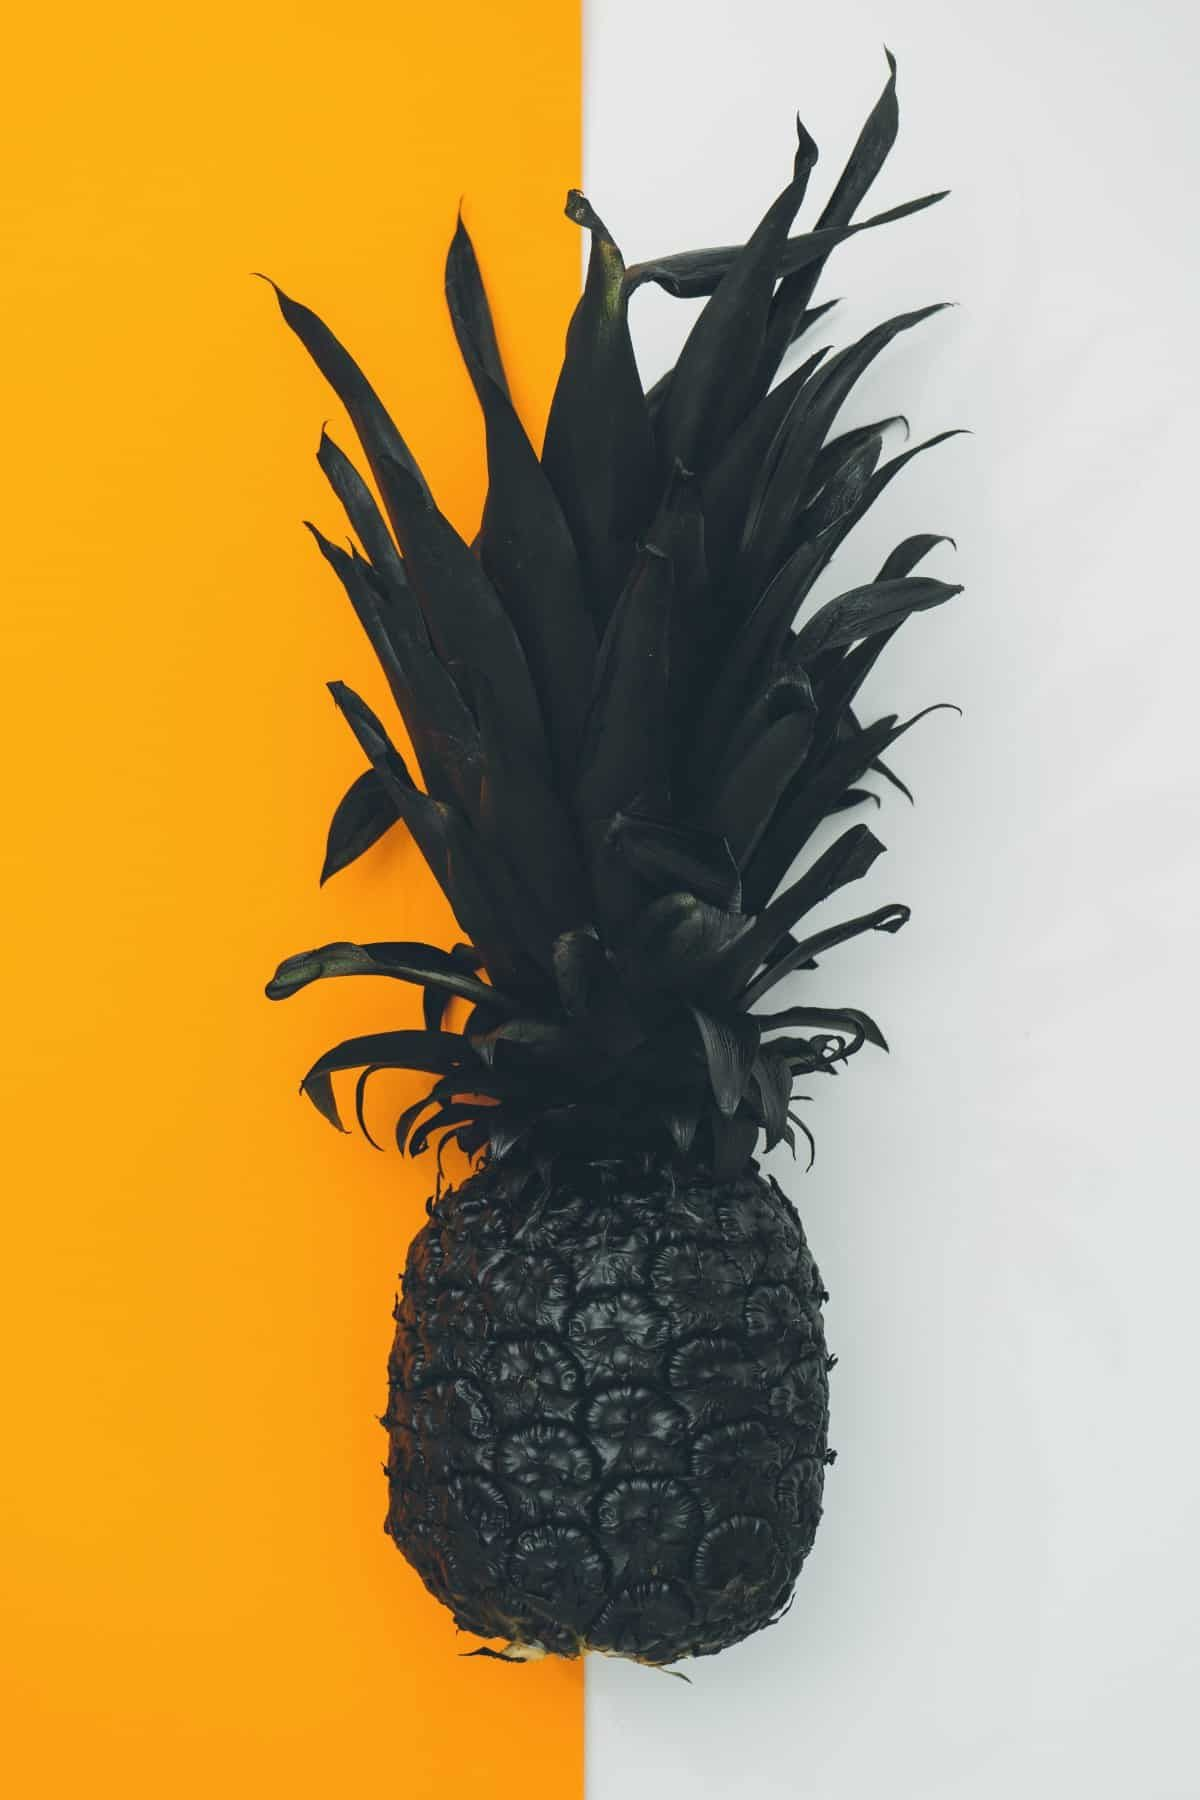 30 Of The Sweetest Desktop And Smartphone Pineapple Wallpapers Inspirationfeed Pineapple Wallpaper Cute Pineapple Wallpaper Pineapple Images